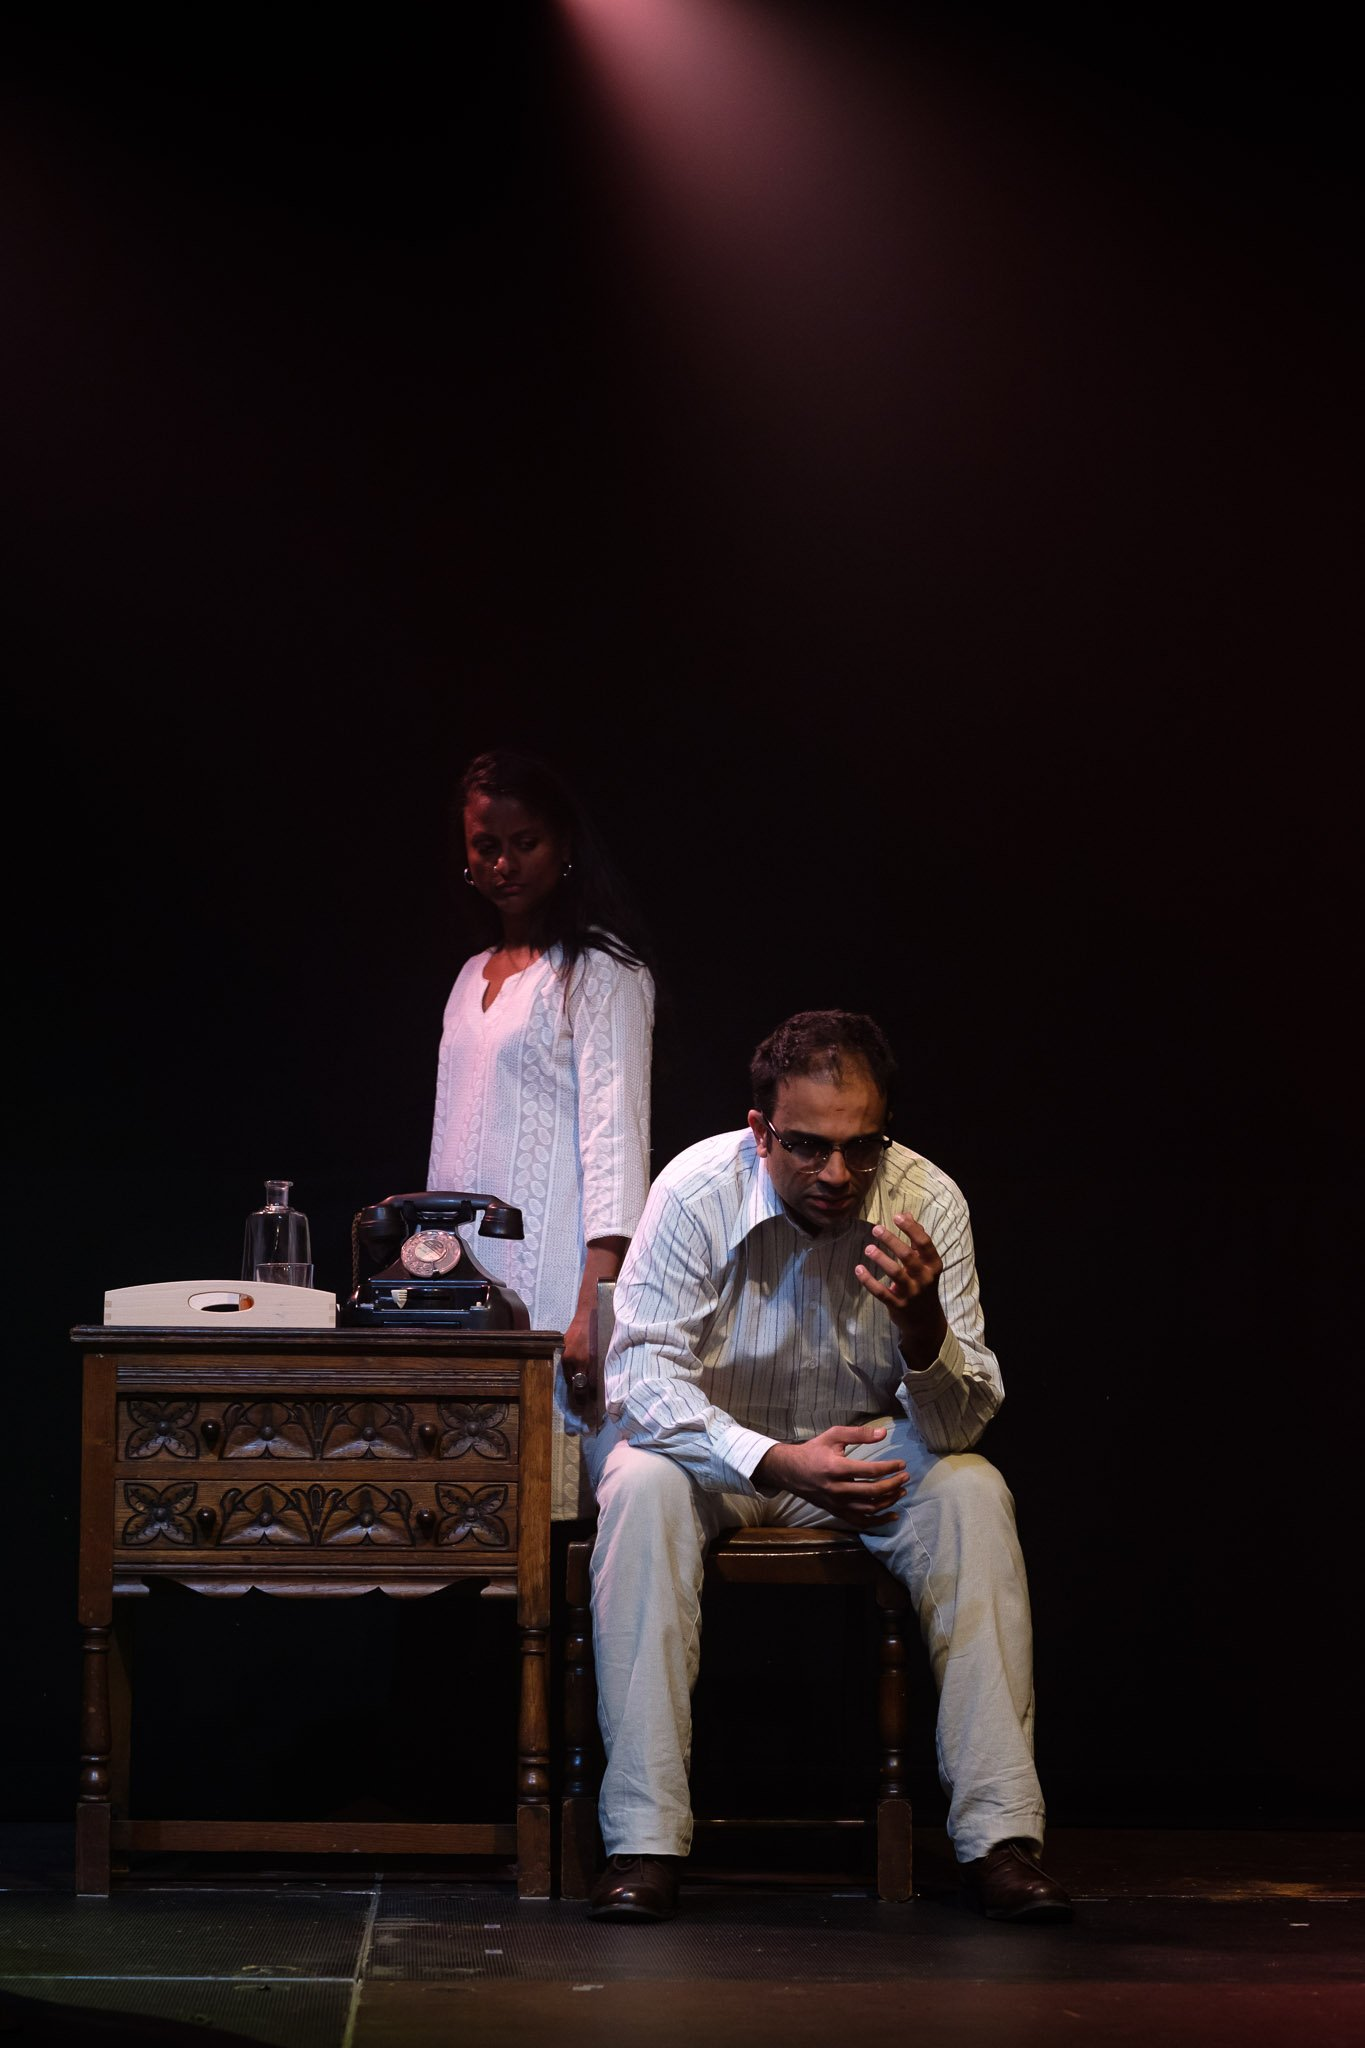 Actor's performing on stage at final dress rehearsal Brighton Festival